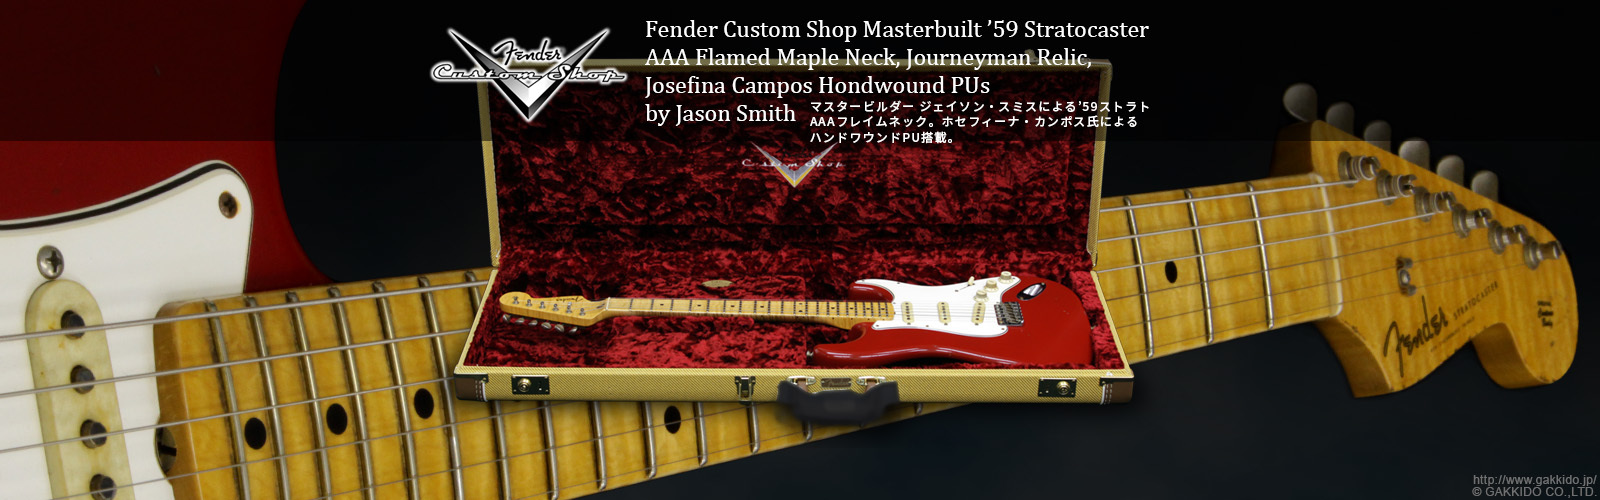 Fender Custom Shop Masterbuilt 1959 Stratocaster Journeyman Relic by Jason Smith [Seminole Red]